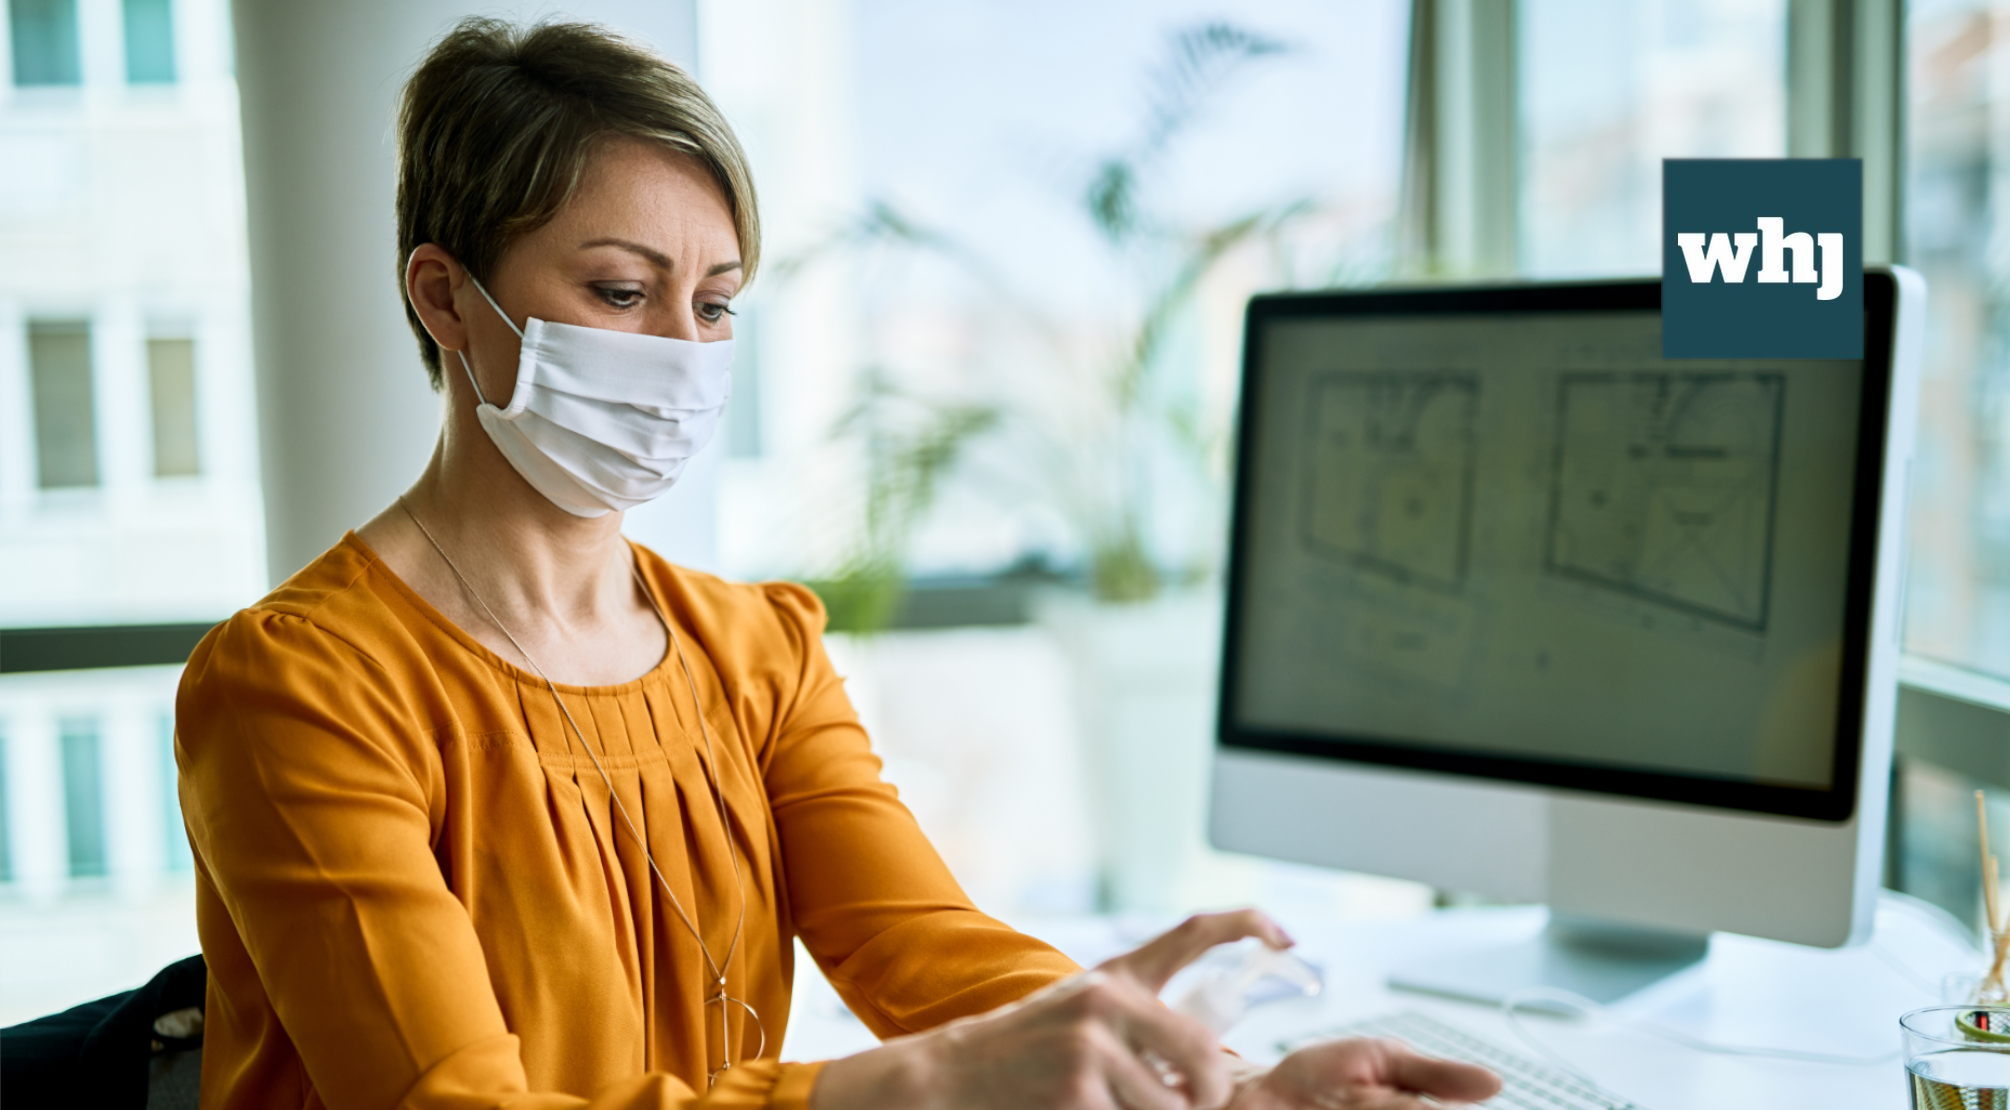 France announces face masks will be mandatory in workplaces